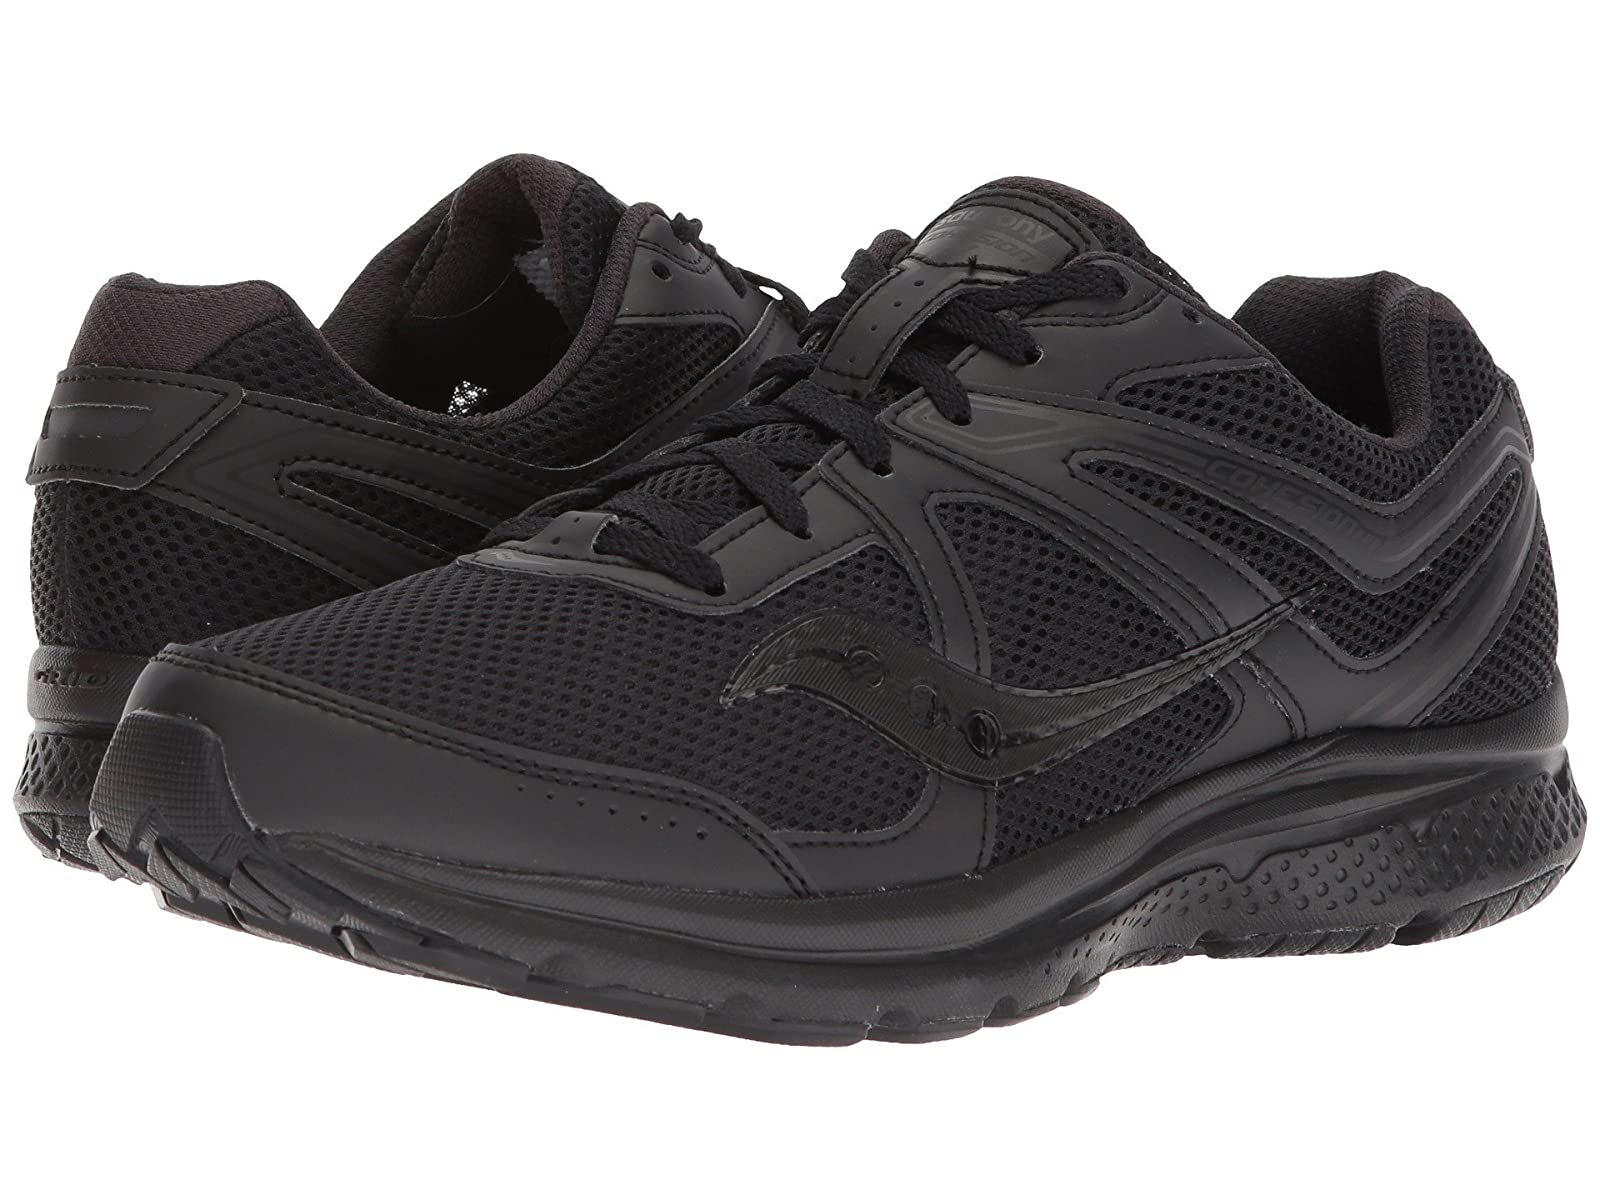 Saucony Cohesion 11Cheap and distinctive eye-catching shoes